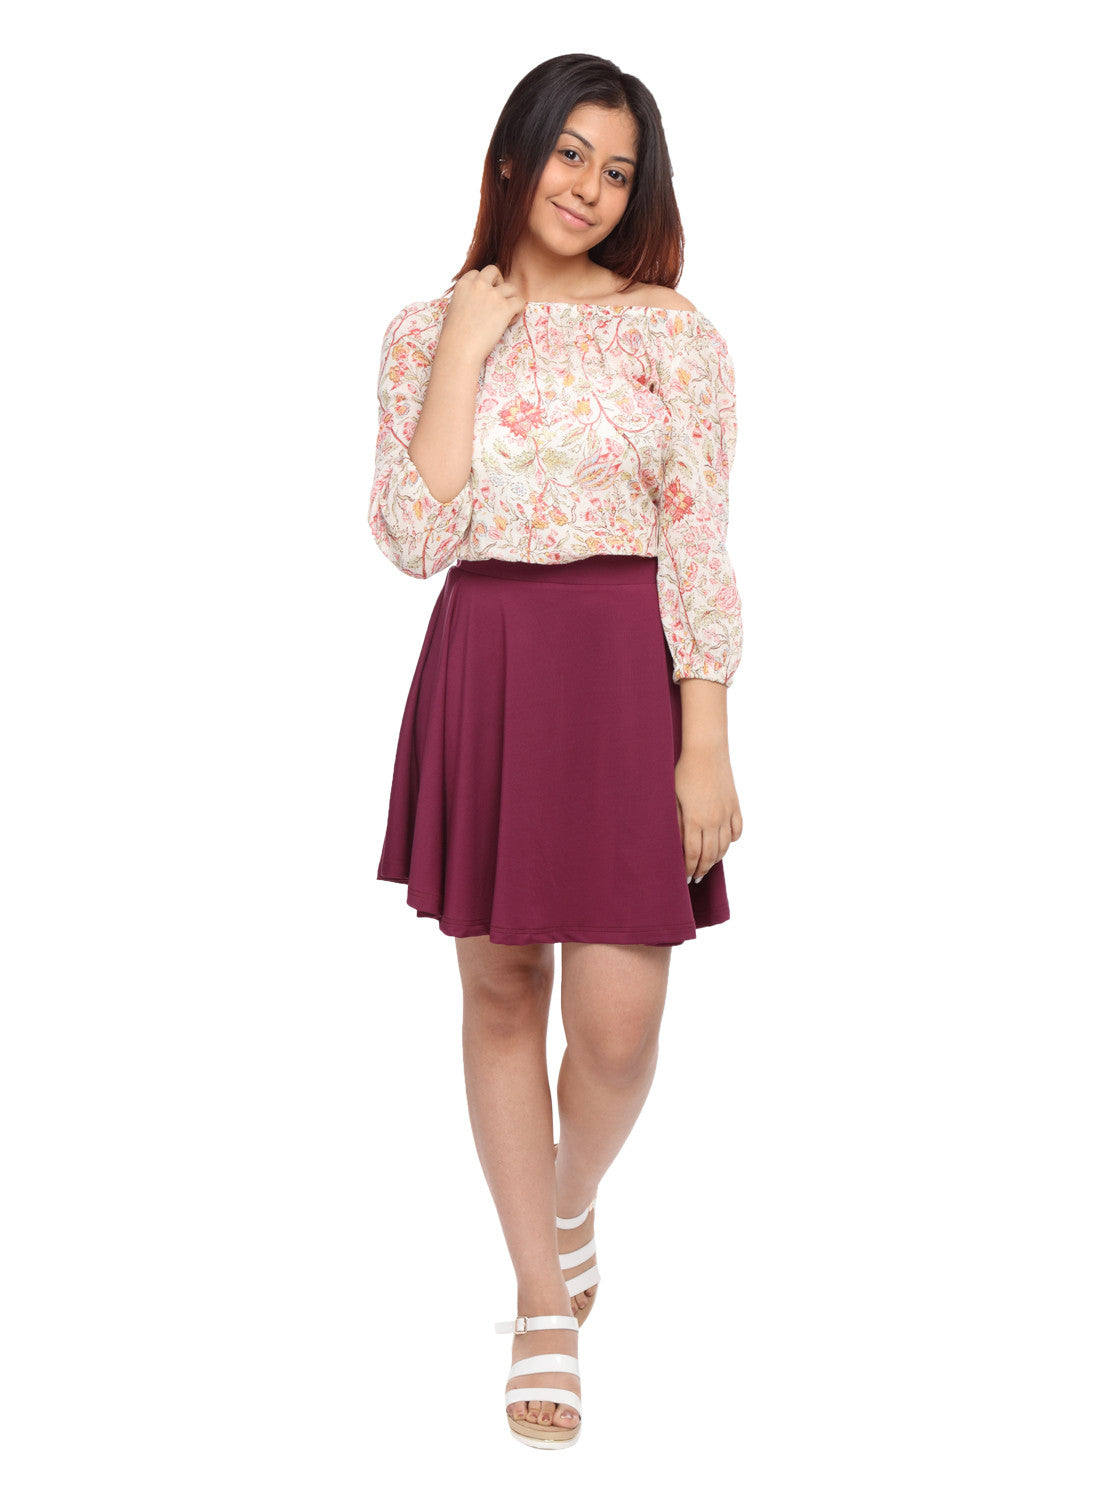 Girls Circle Skirt in Wine colour - GENZEE